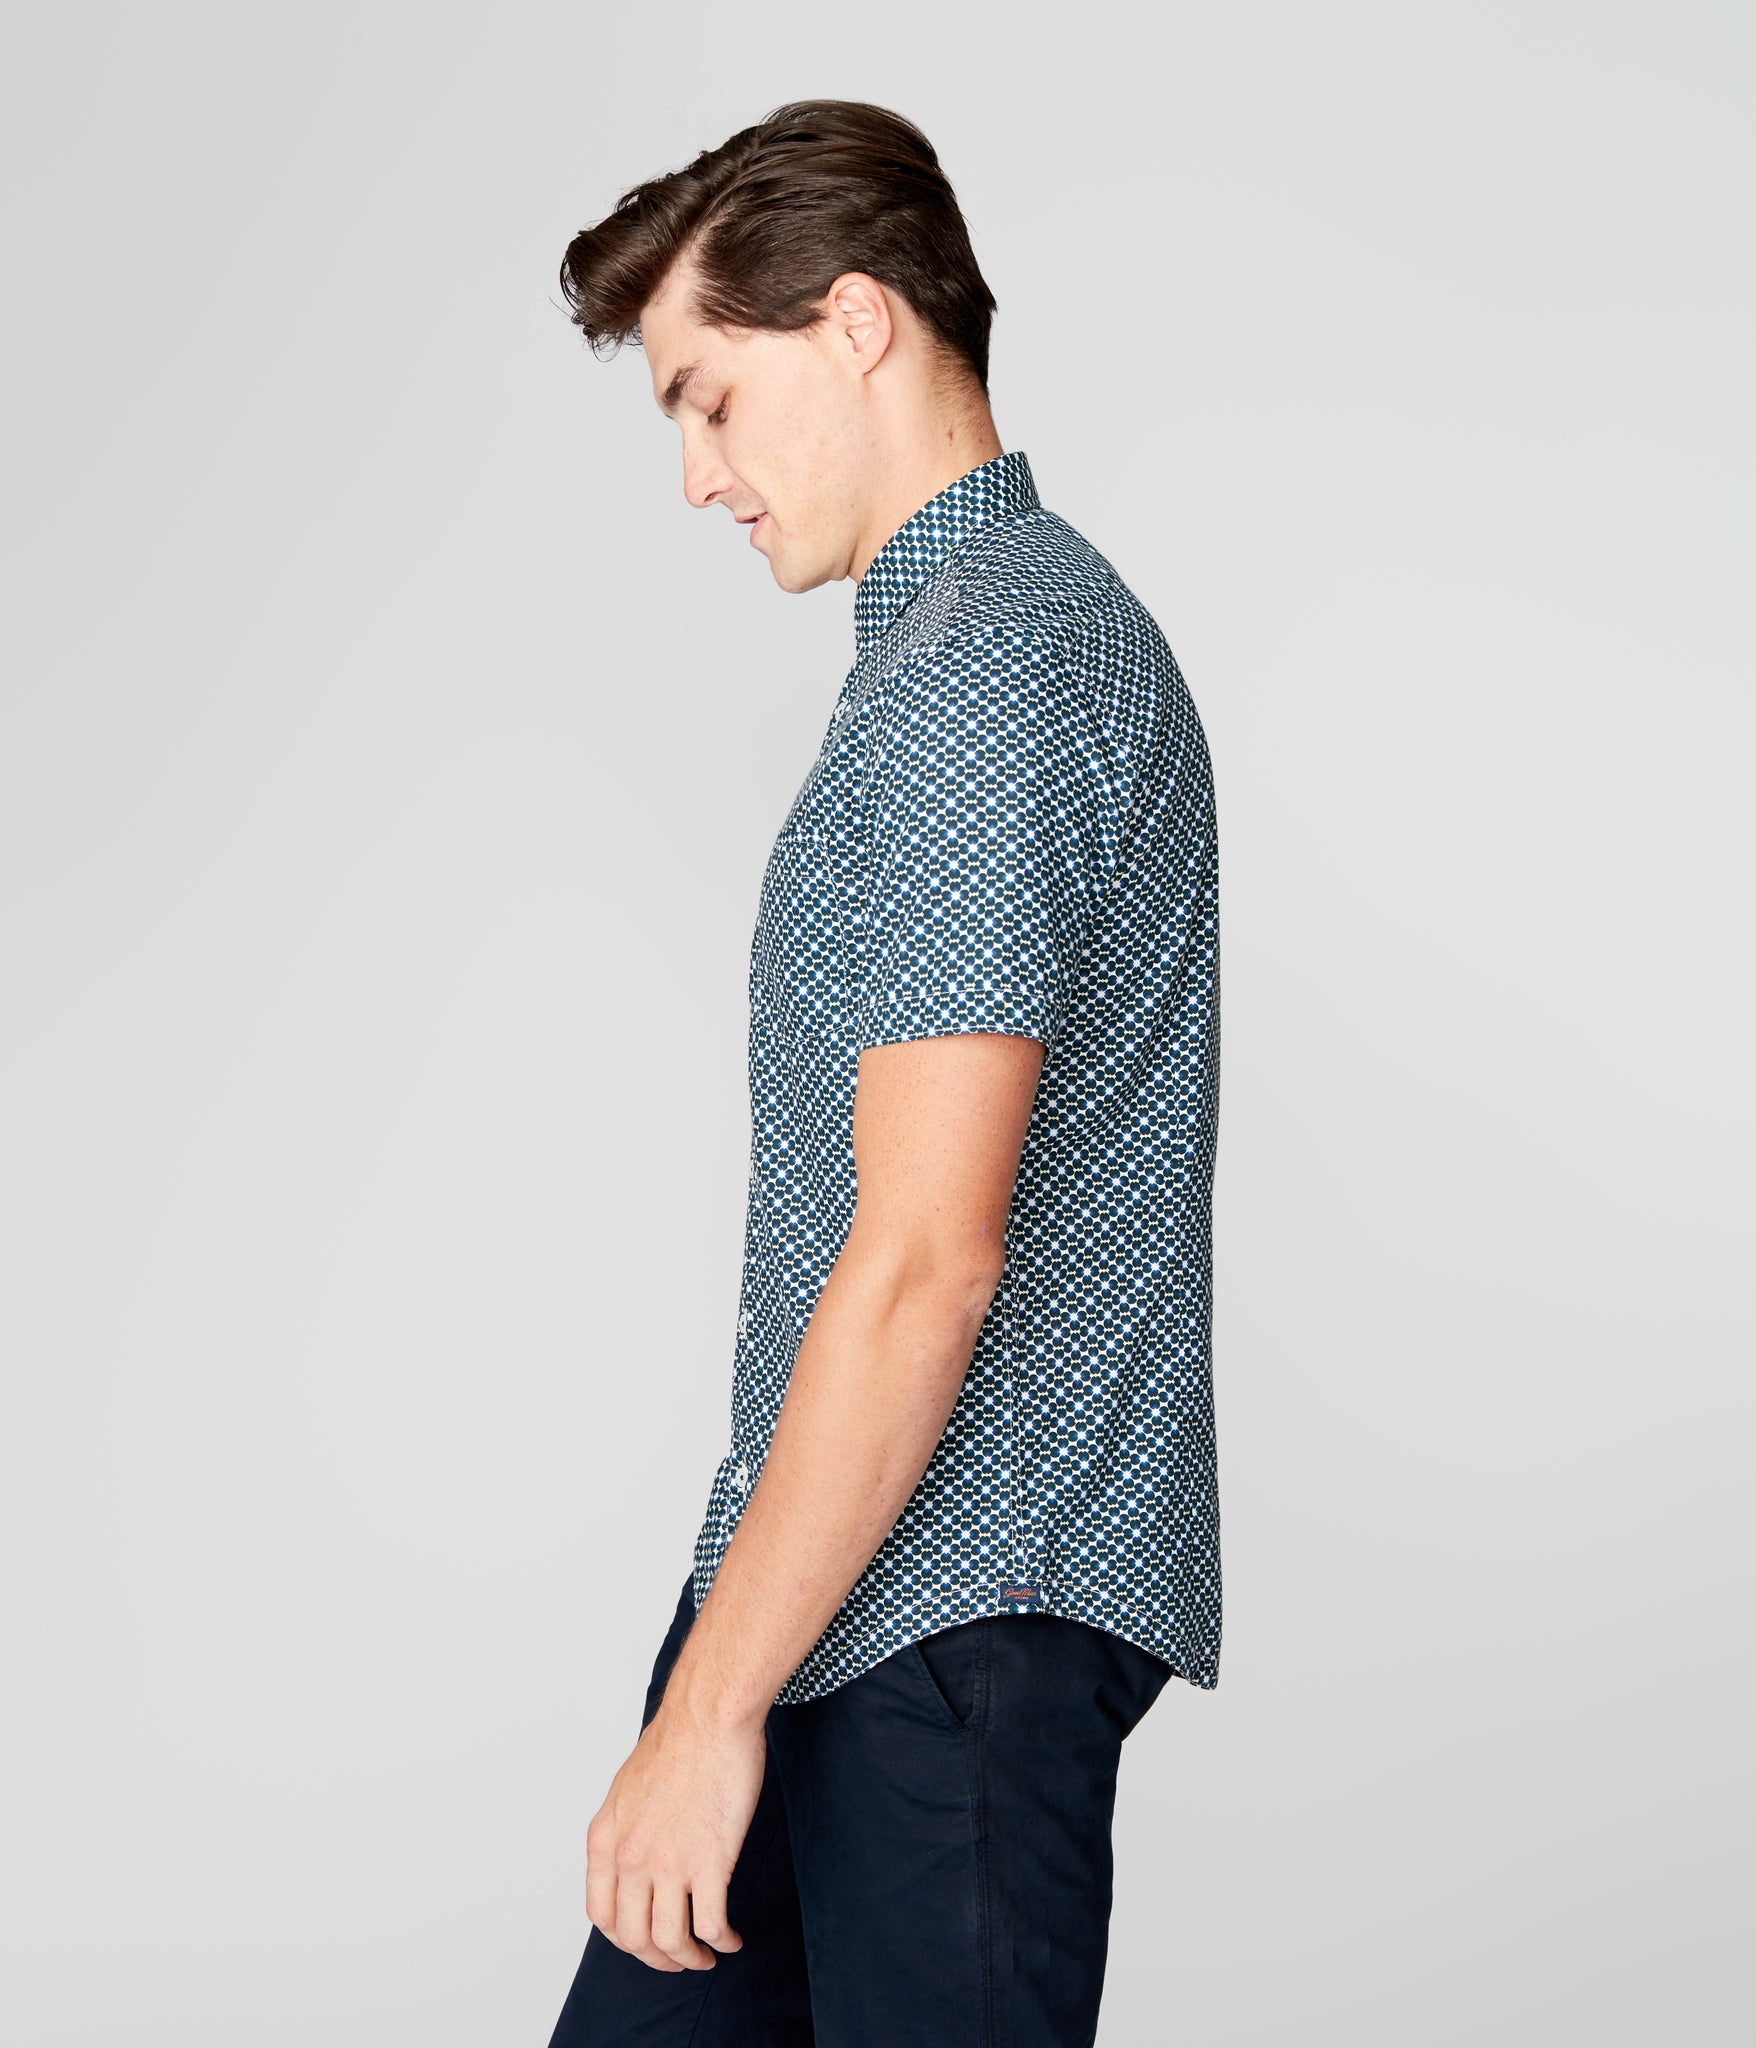 Woven On-Point Shirt - Sky Captain Seine Geo